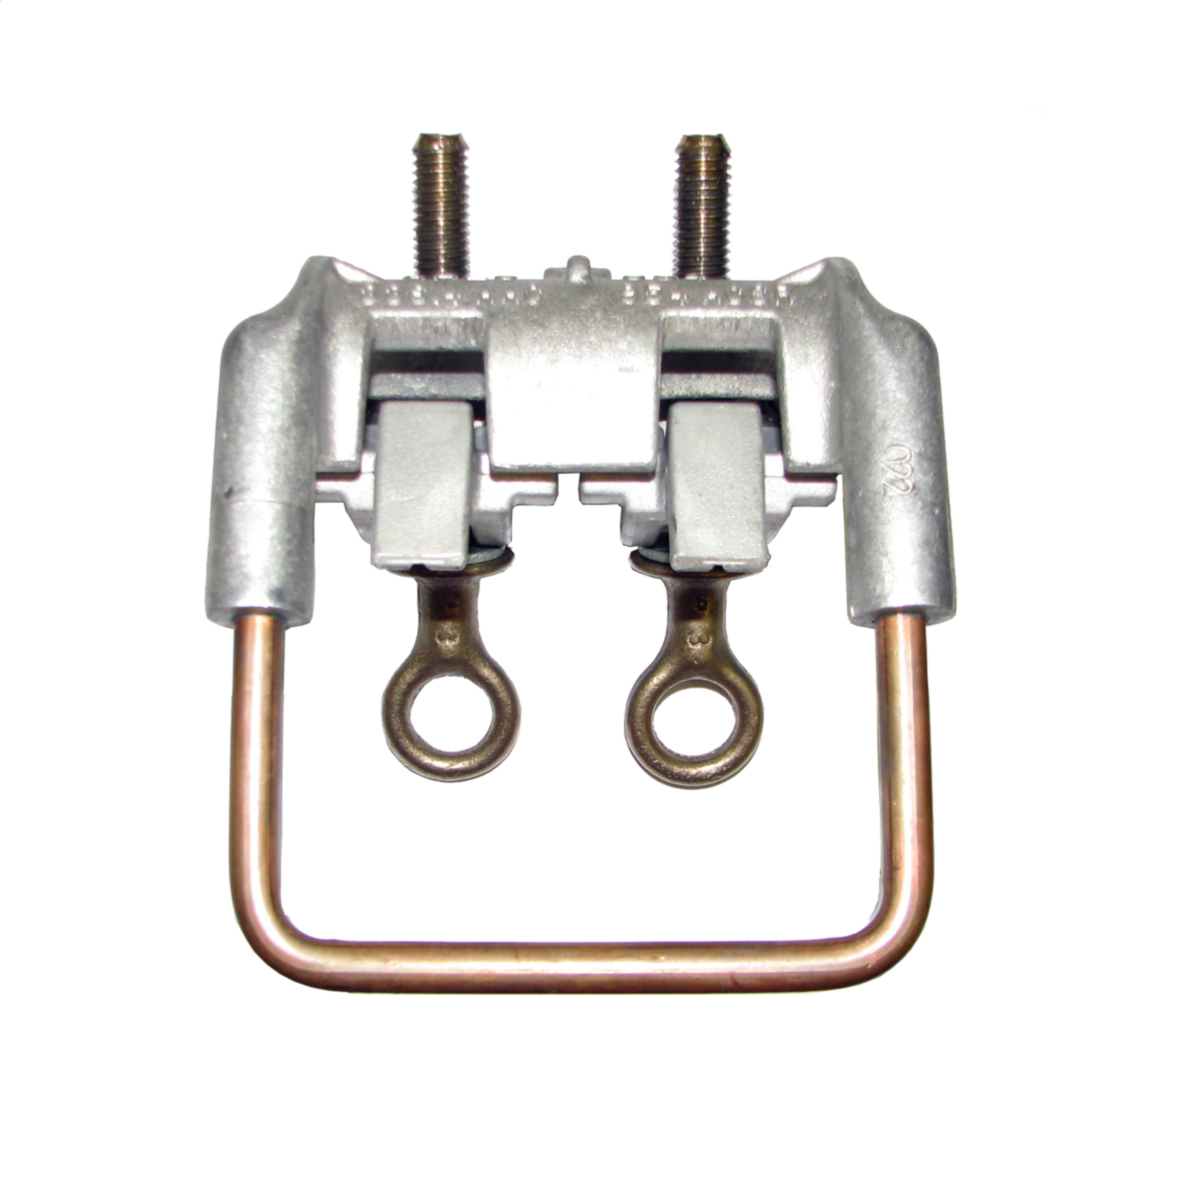 Stirrup Clamp | AHLS954022E | Hubbell Power Systems